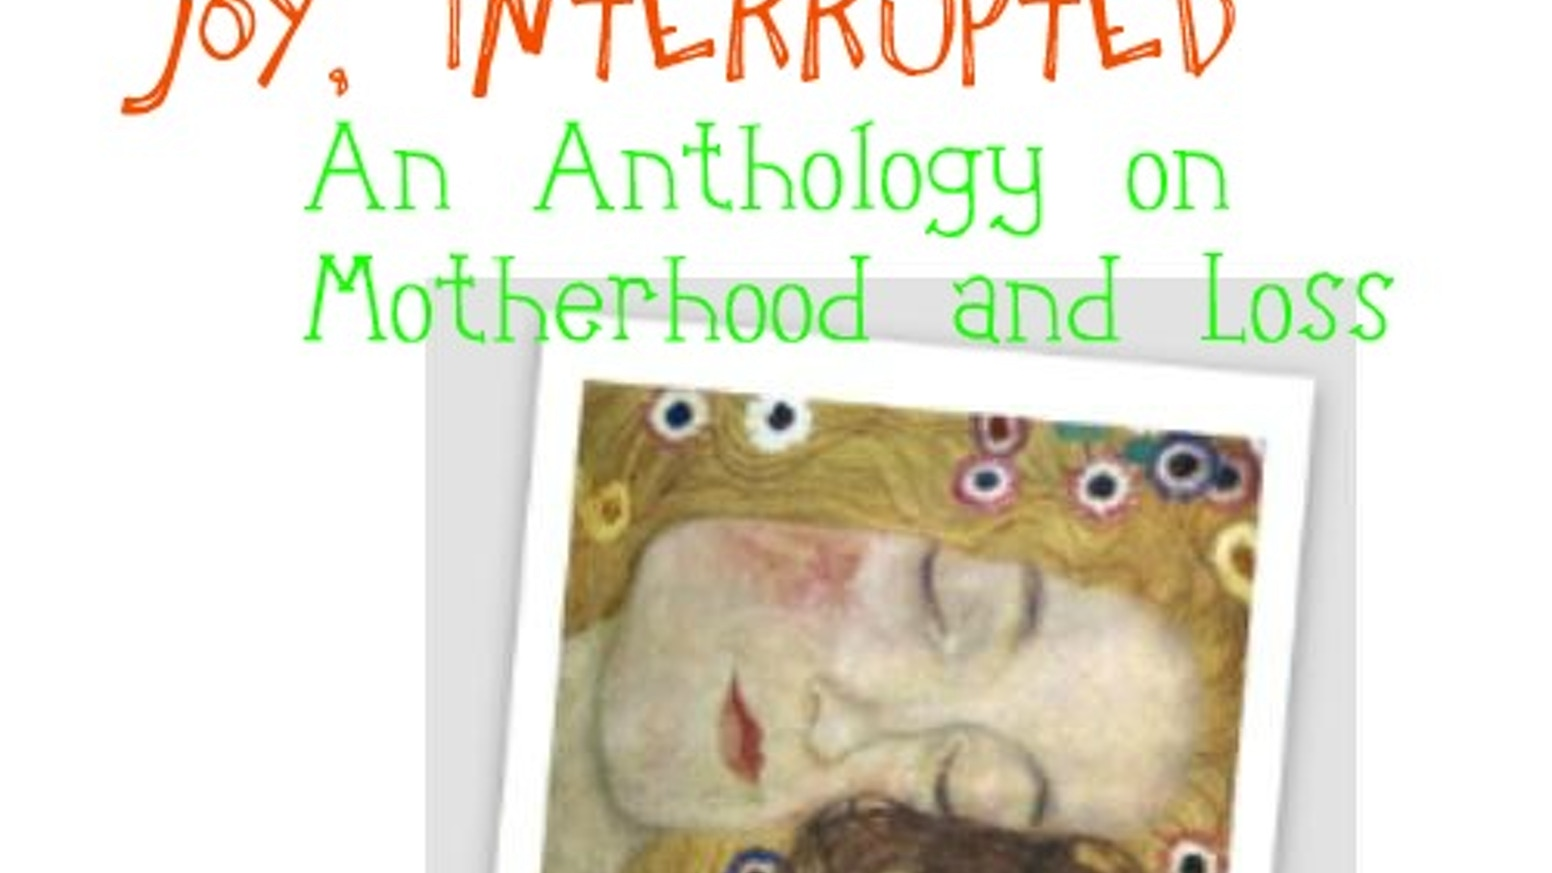 ISBN for Anthology on Motherhood and Loss by Melissa Miles